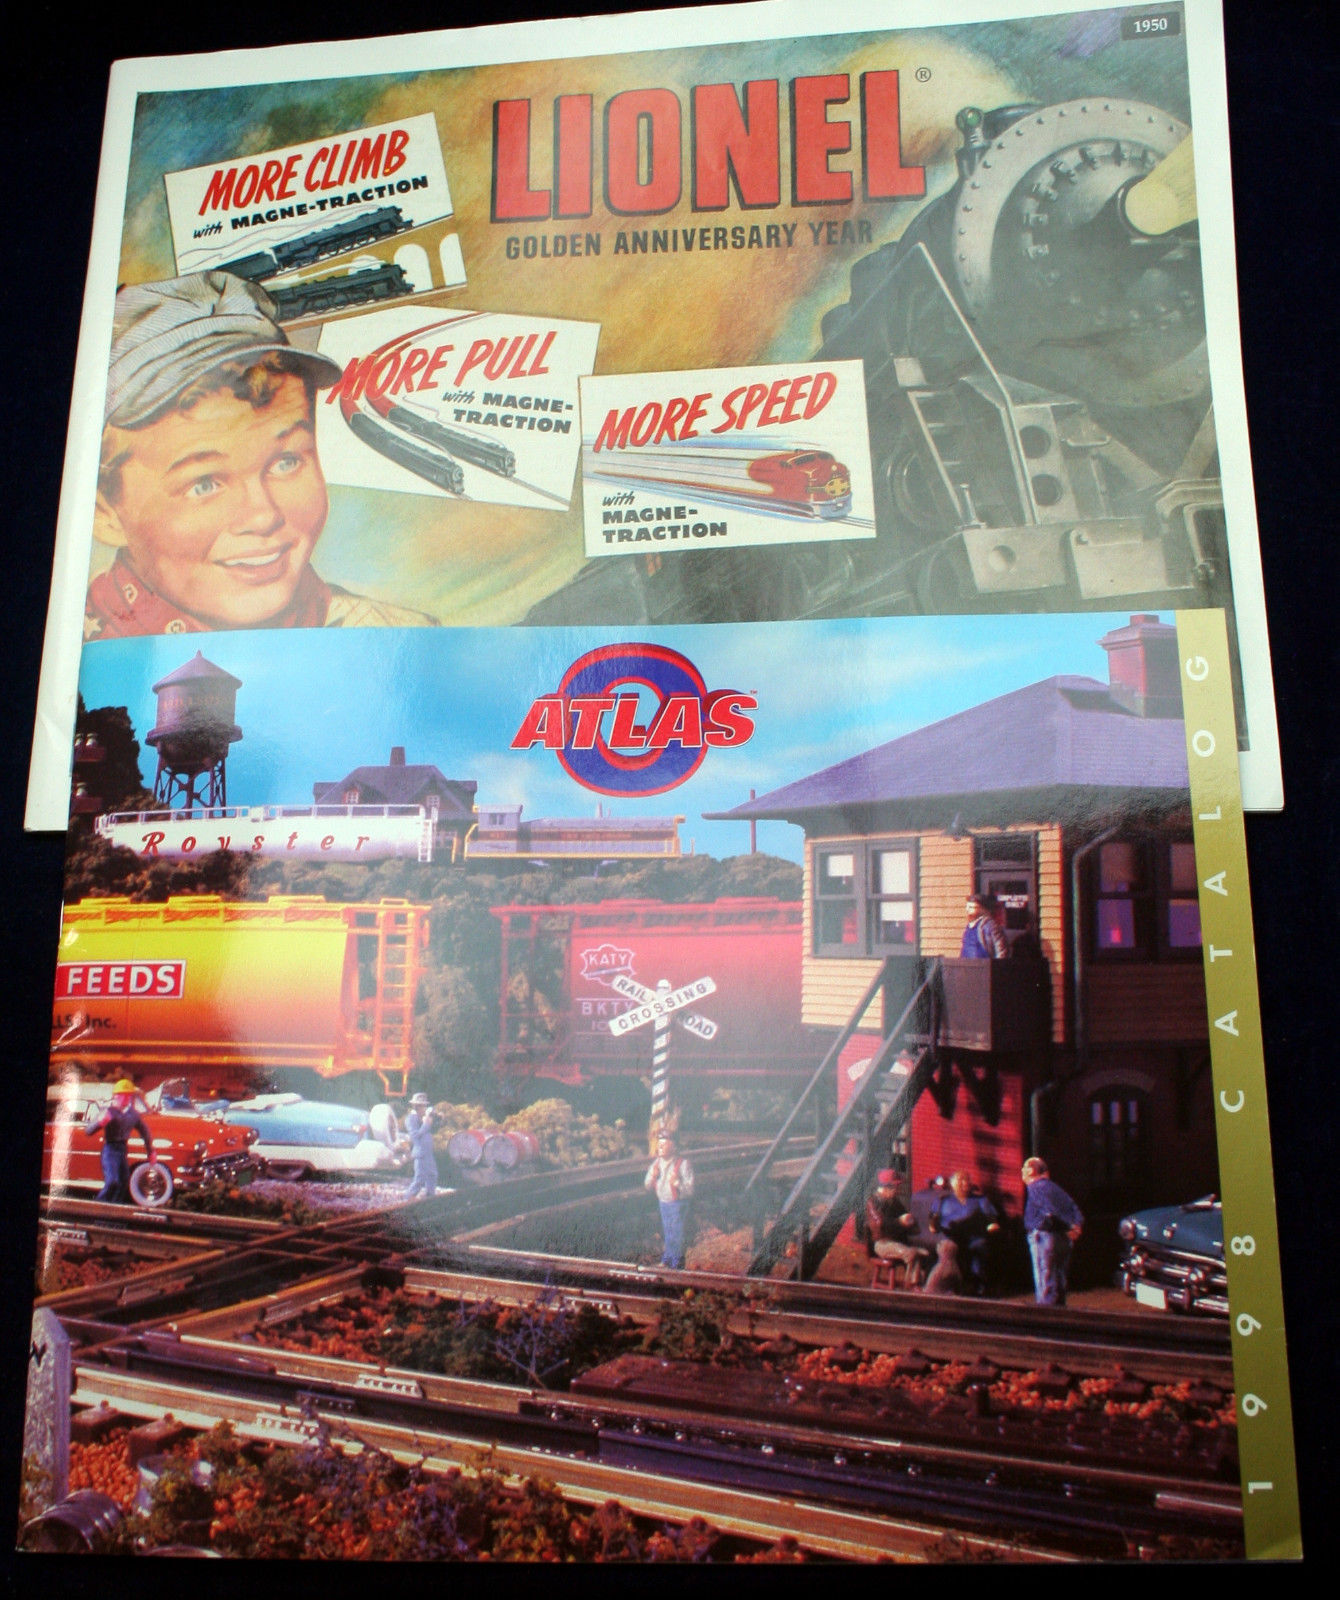 Primary image for Lot 2 Toy Model Train Catalog Lionel 75th Anniversary Magnetraction Atlas O gage